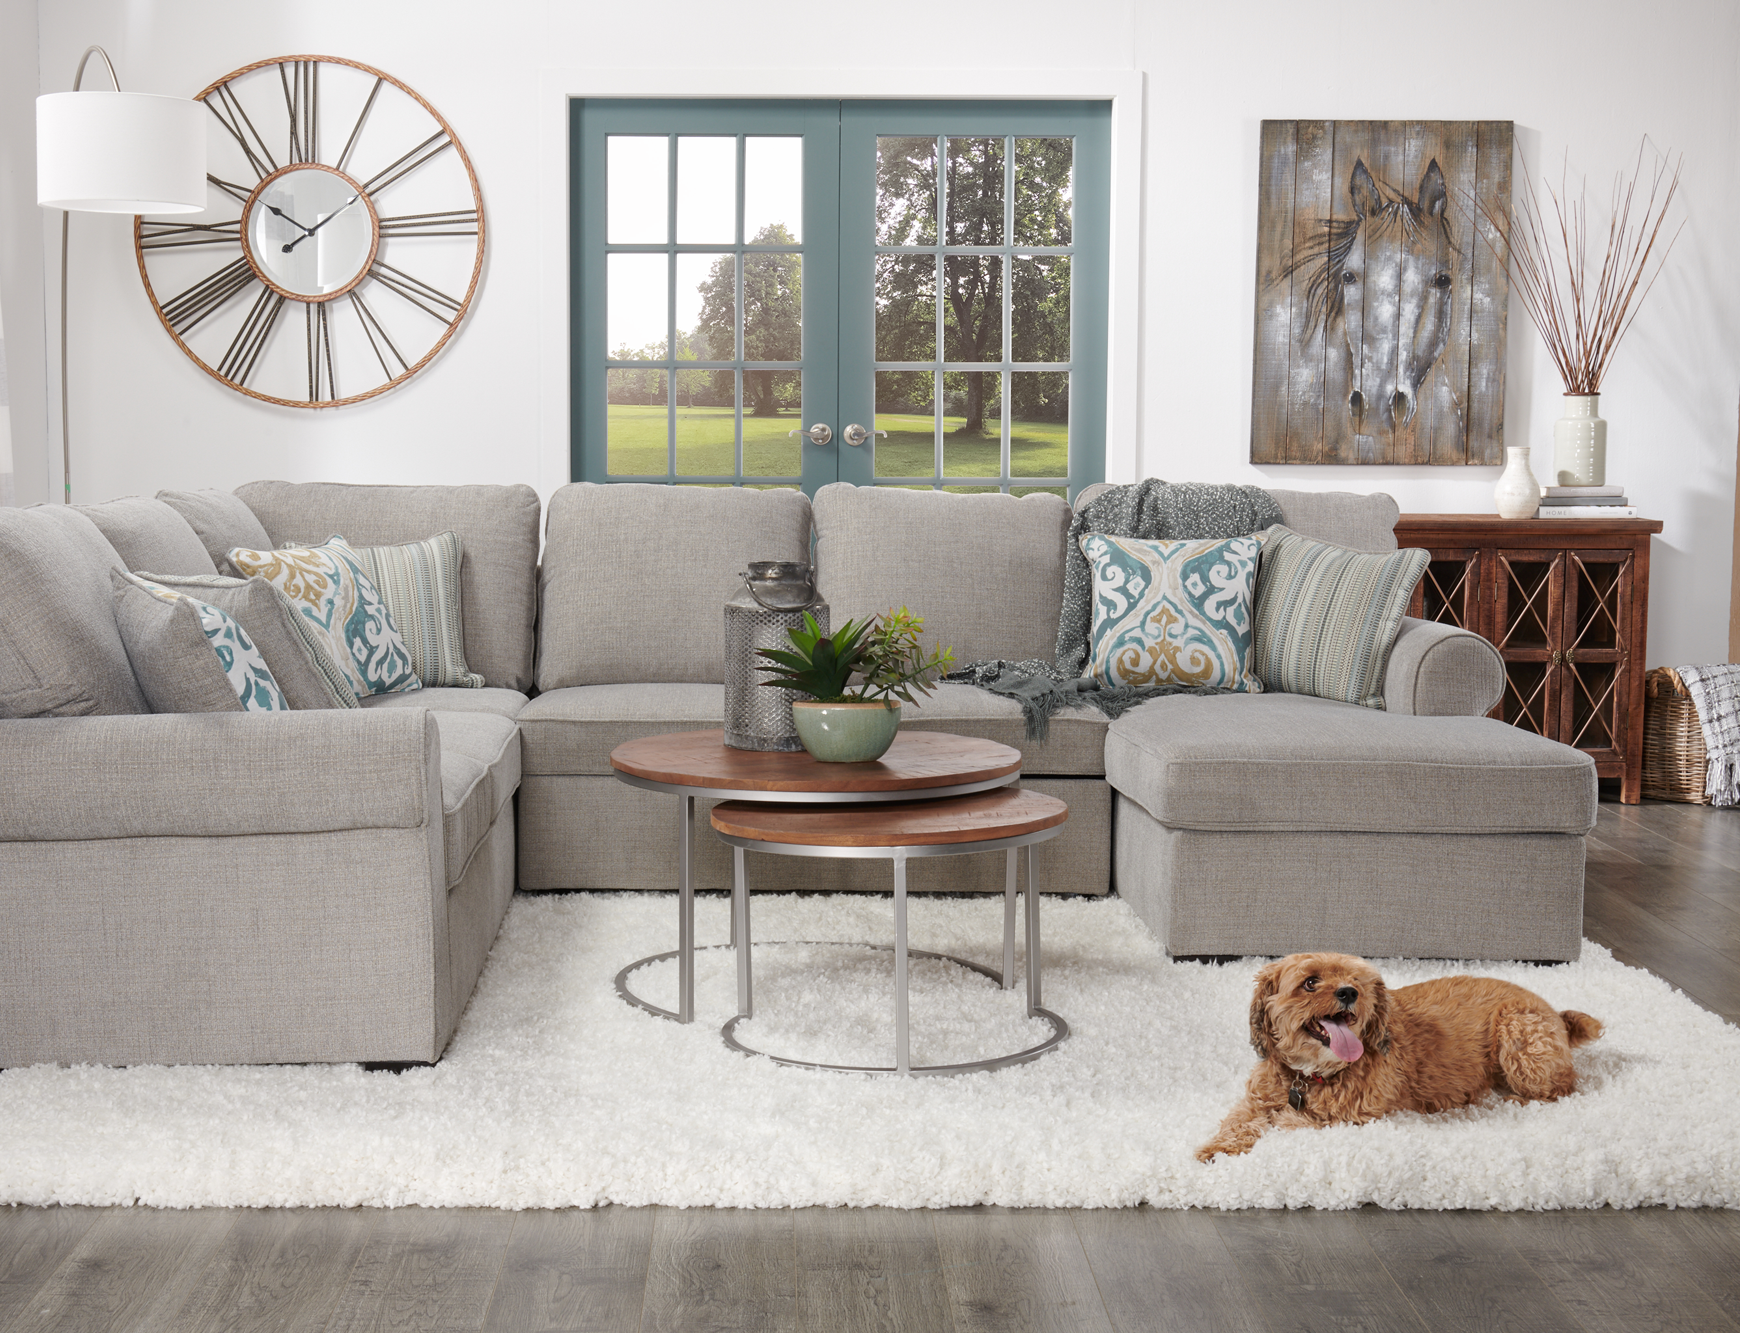 Turn Your Sectional Into A Sleeper Sofa For Guests Grey Sectional Rooms To Go Storage Chaise